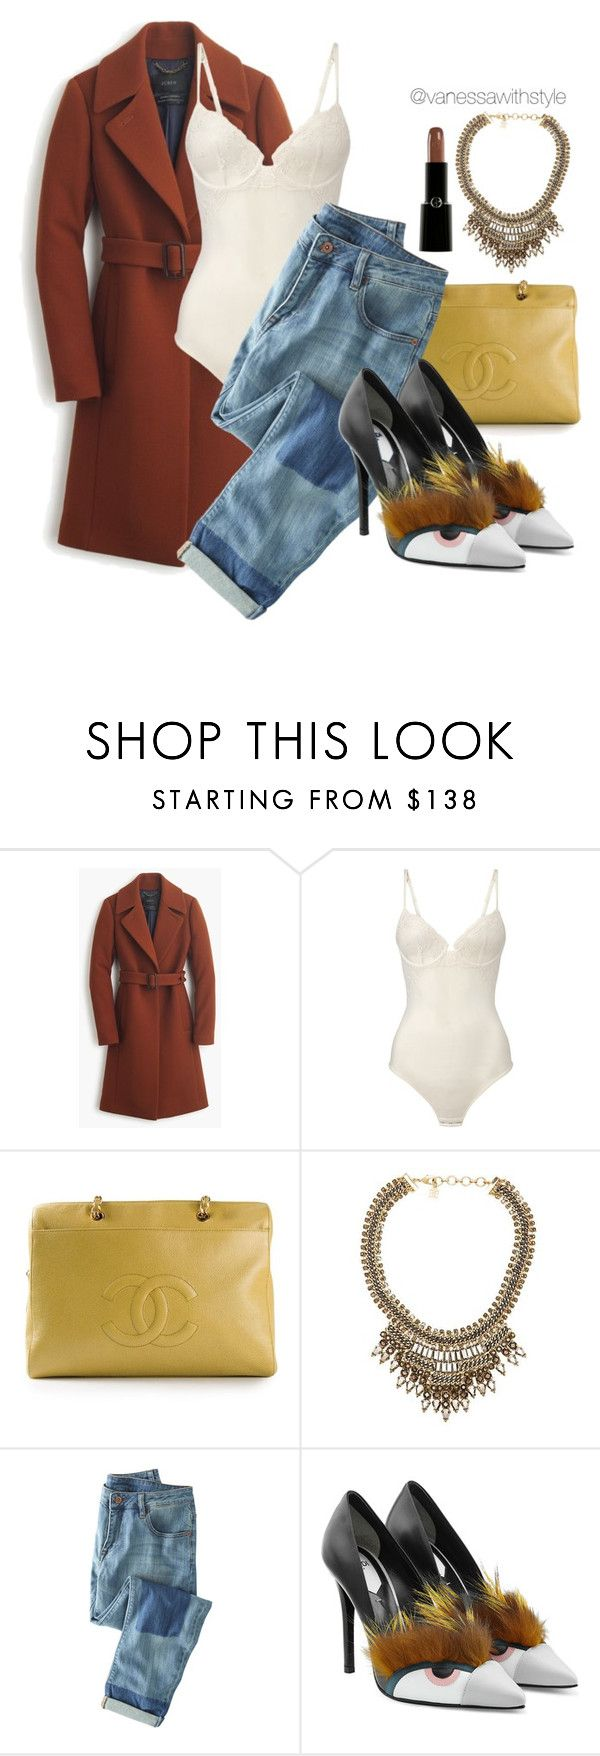 """""""new"""" by vanessawithstyle ❤ liked on Polyvore featuring J.Crew, La Perla, Chanel, BCBGMAXAZRIA, Wrap, Fendi, Giorgio Armani, women's clothing, women and female"""